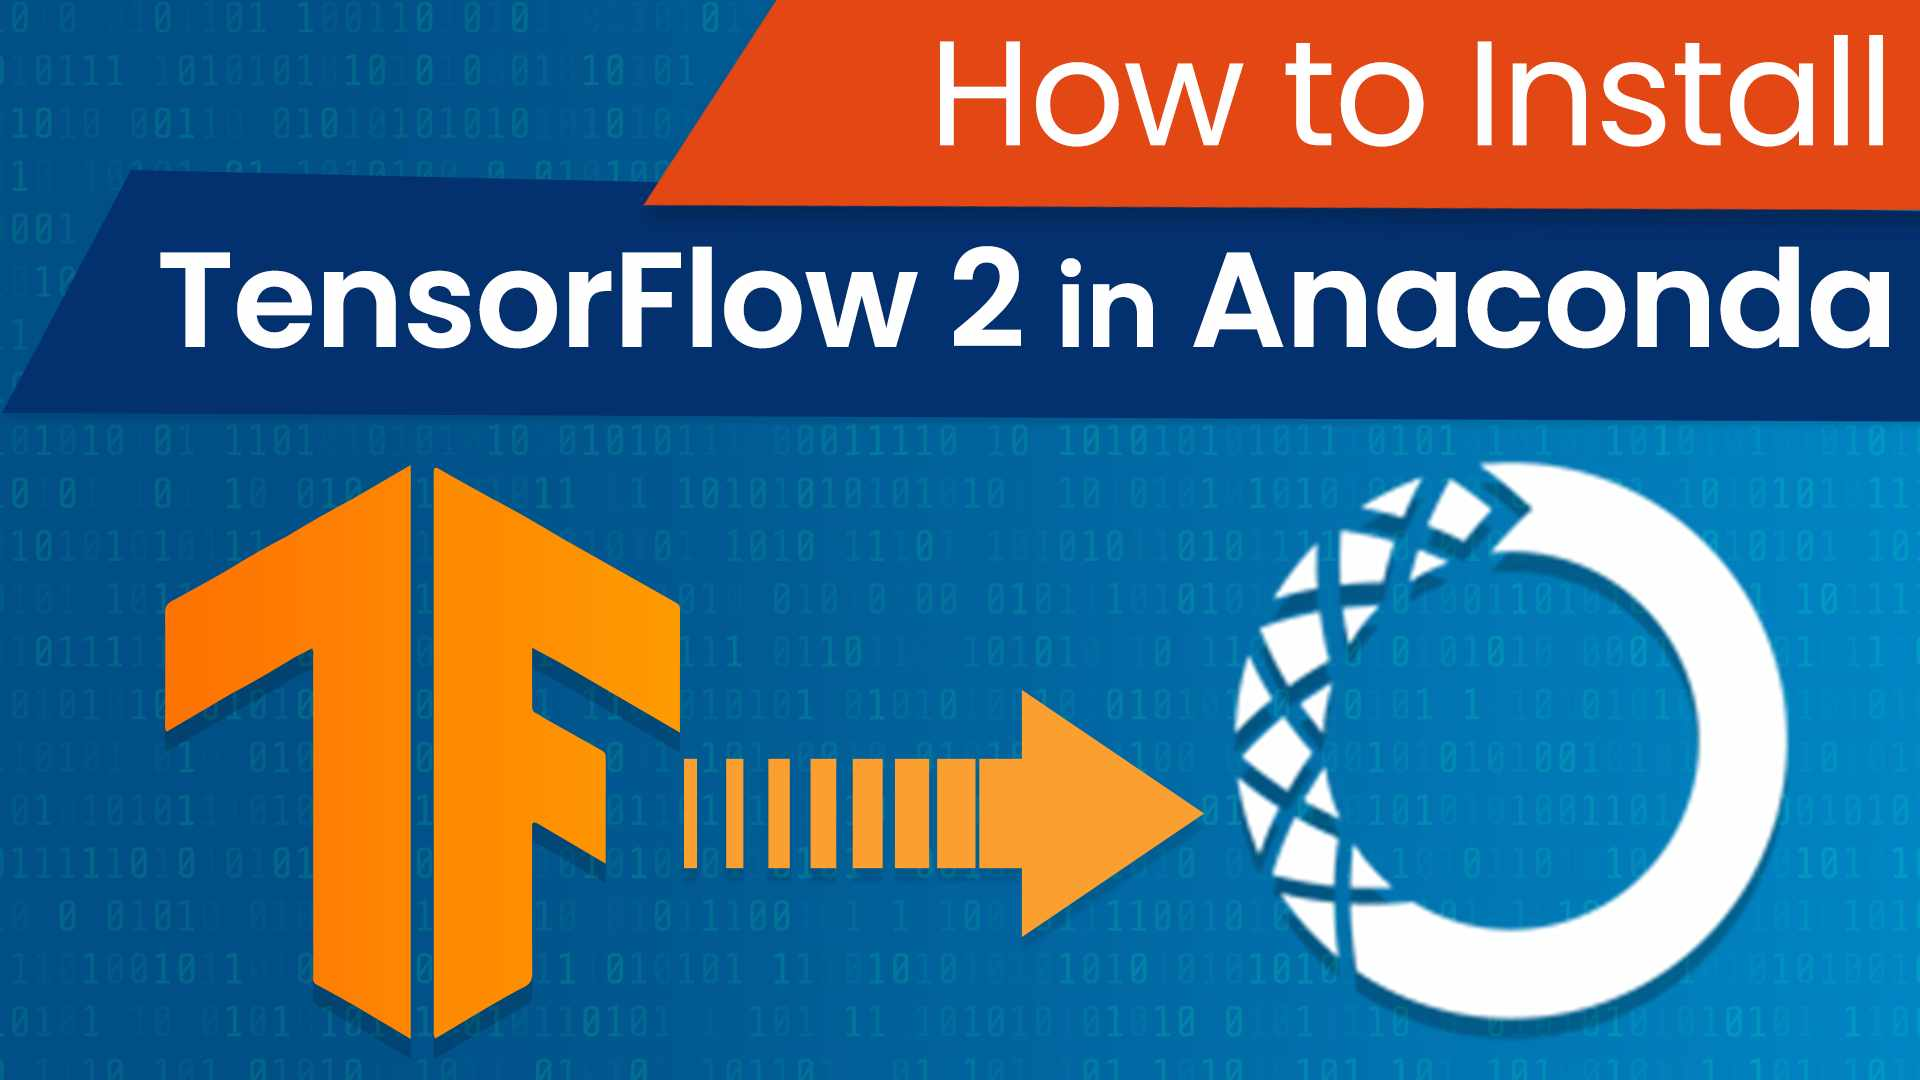 How to Install TensorFlow 2 in Anaconda